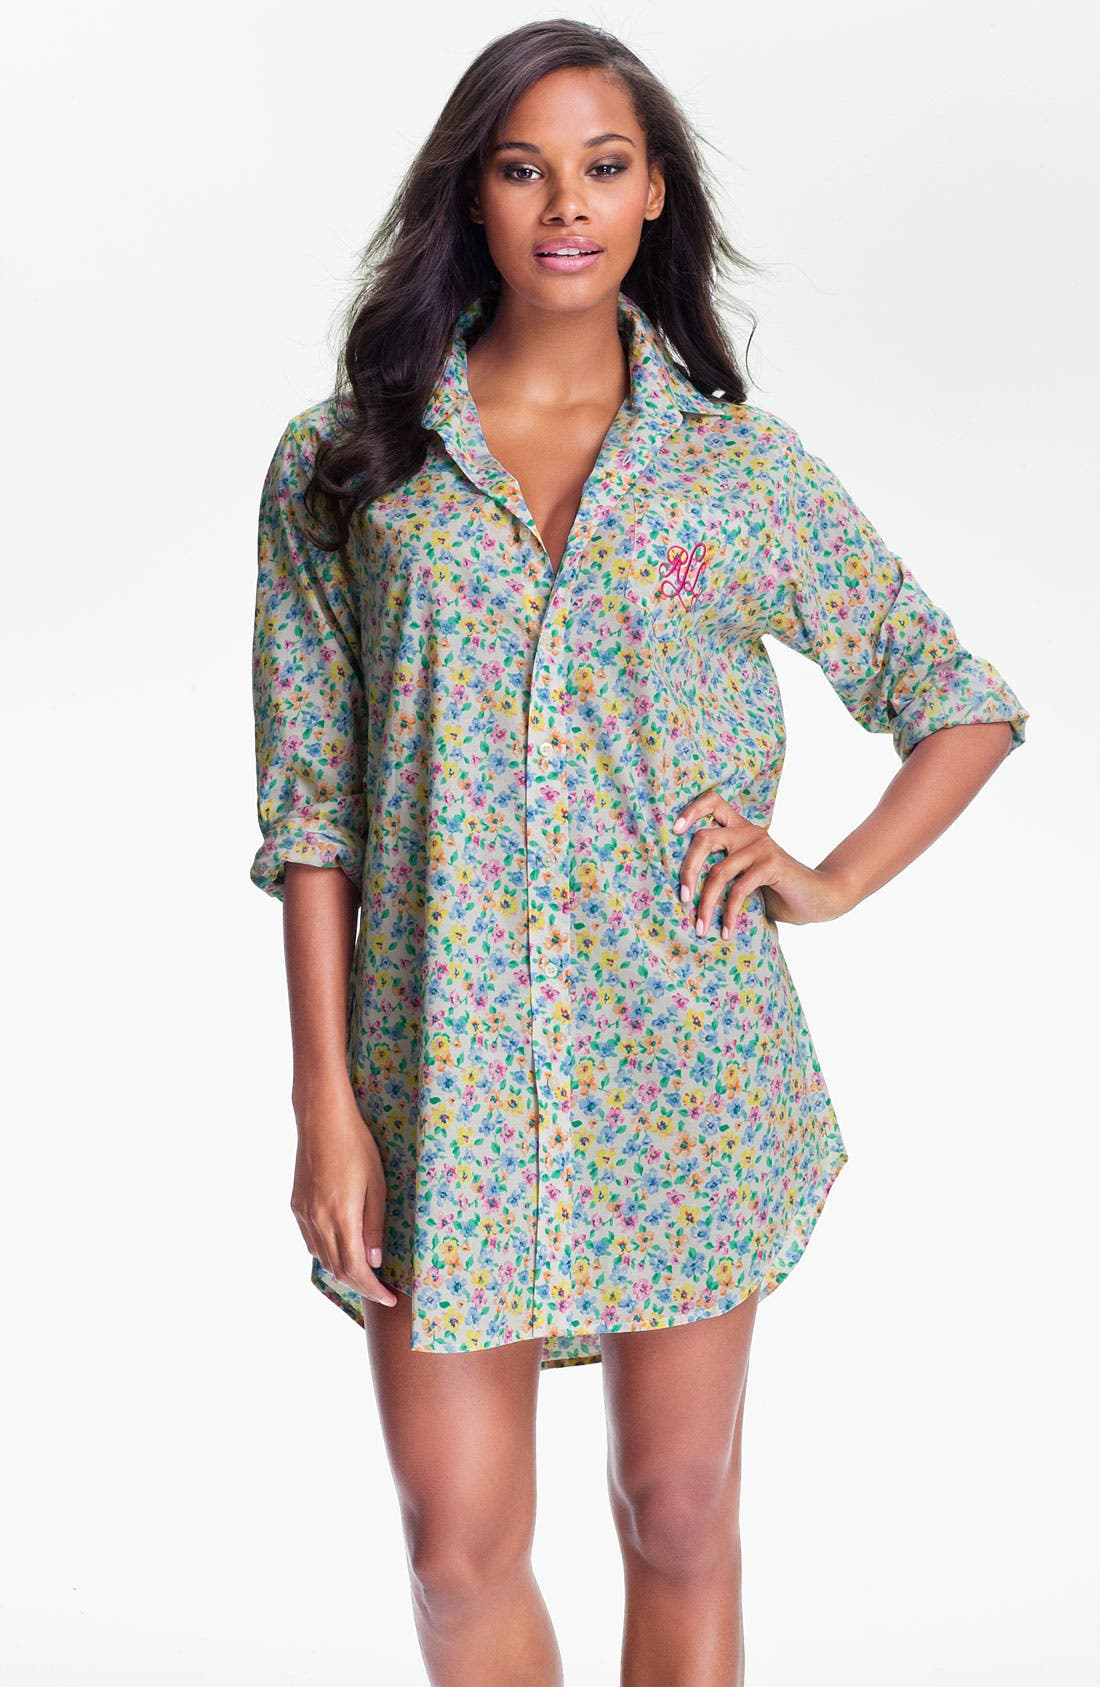 Alternate Image 1 Selected - Lauren Ralph Lauren Sleepwear Floral Print Nightshirt